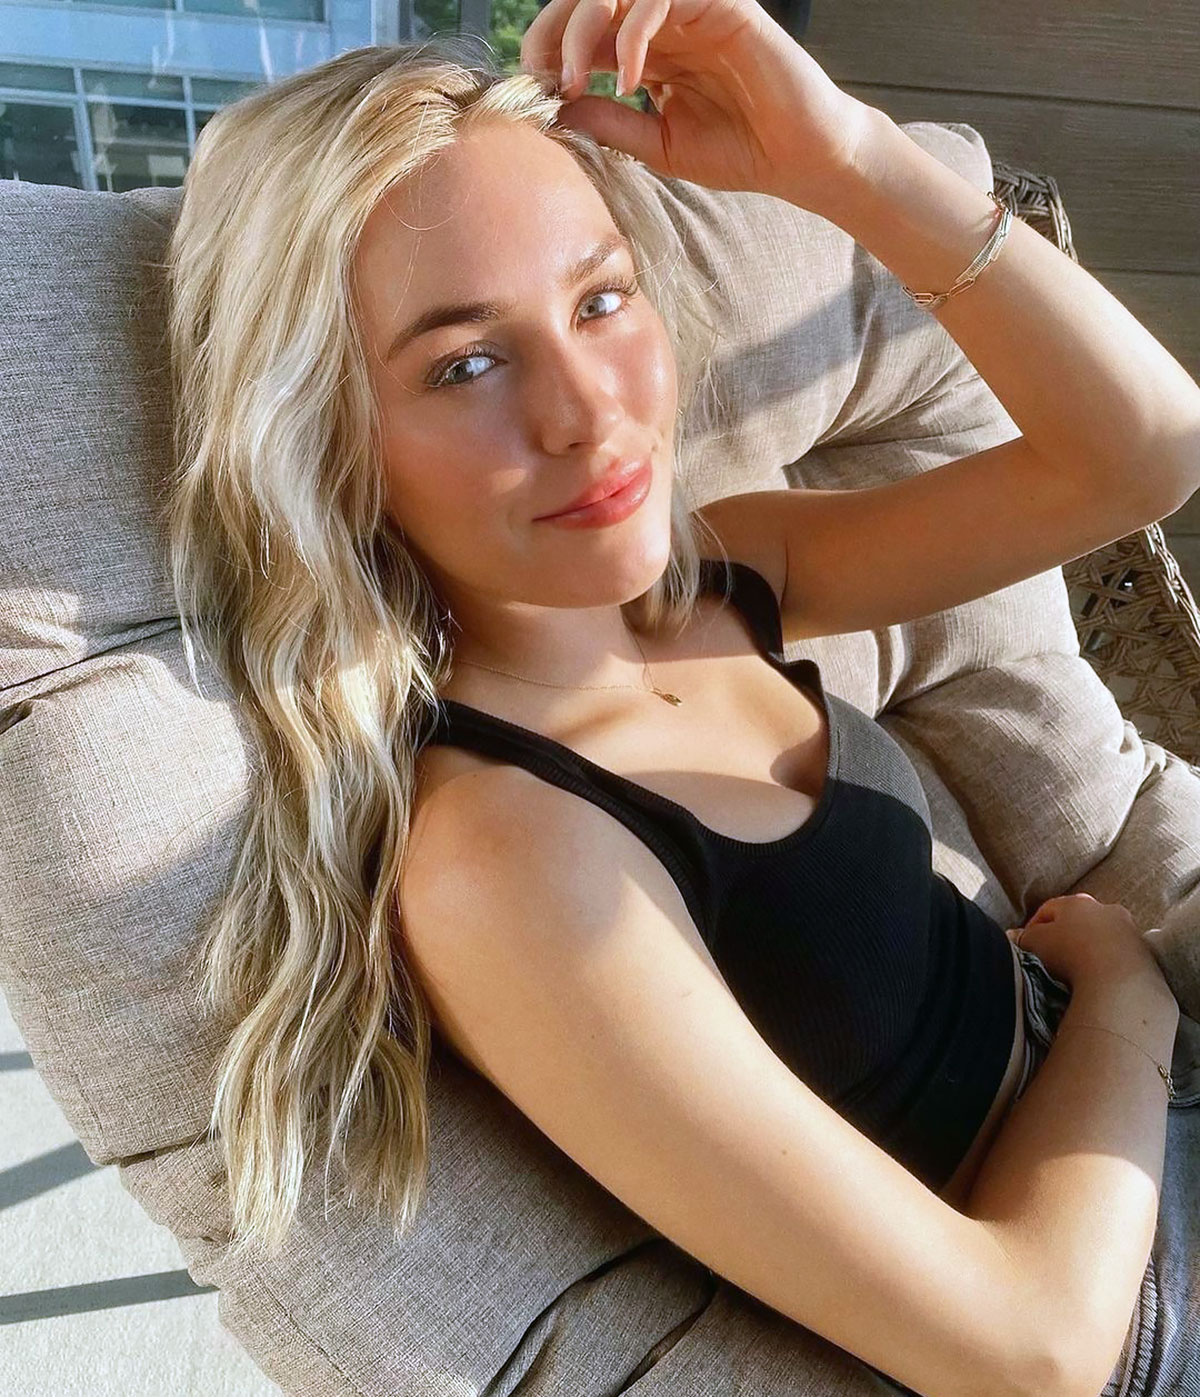 Bachelor's Cassie Randolph Gets 'Real and Transparent' About Plastic Surgery Rumors